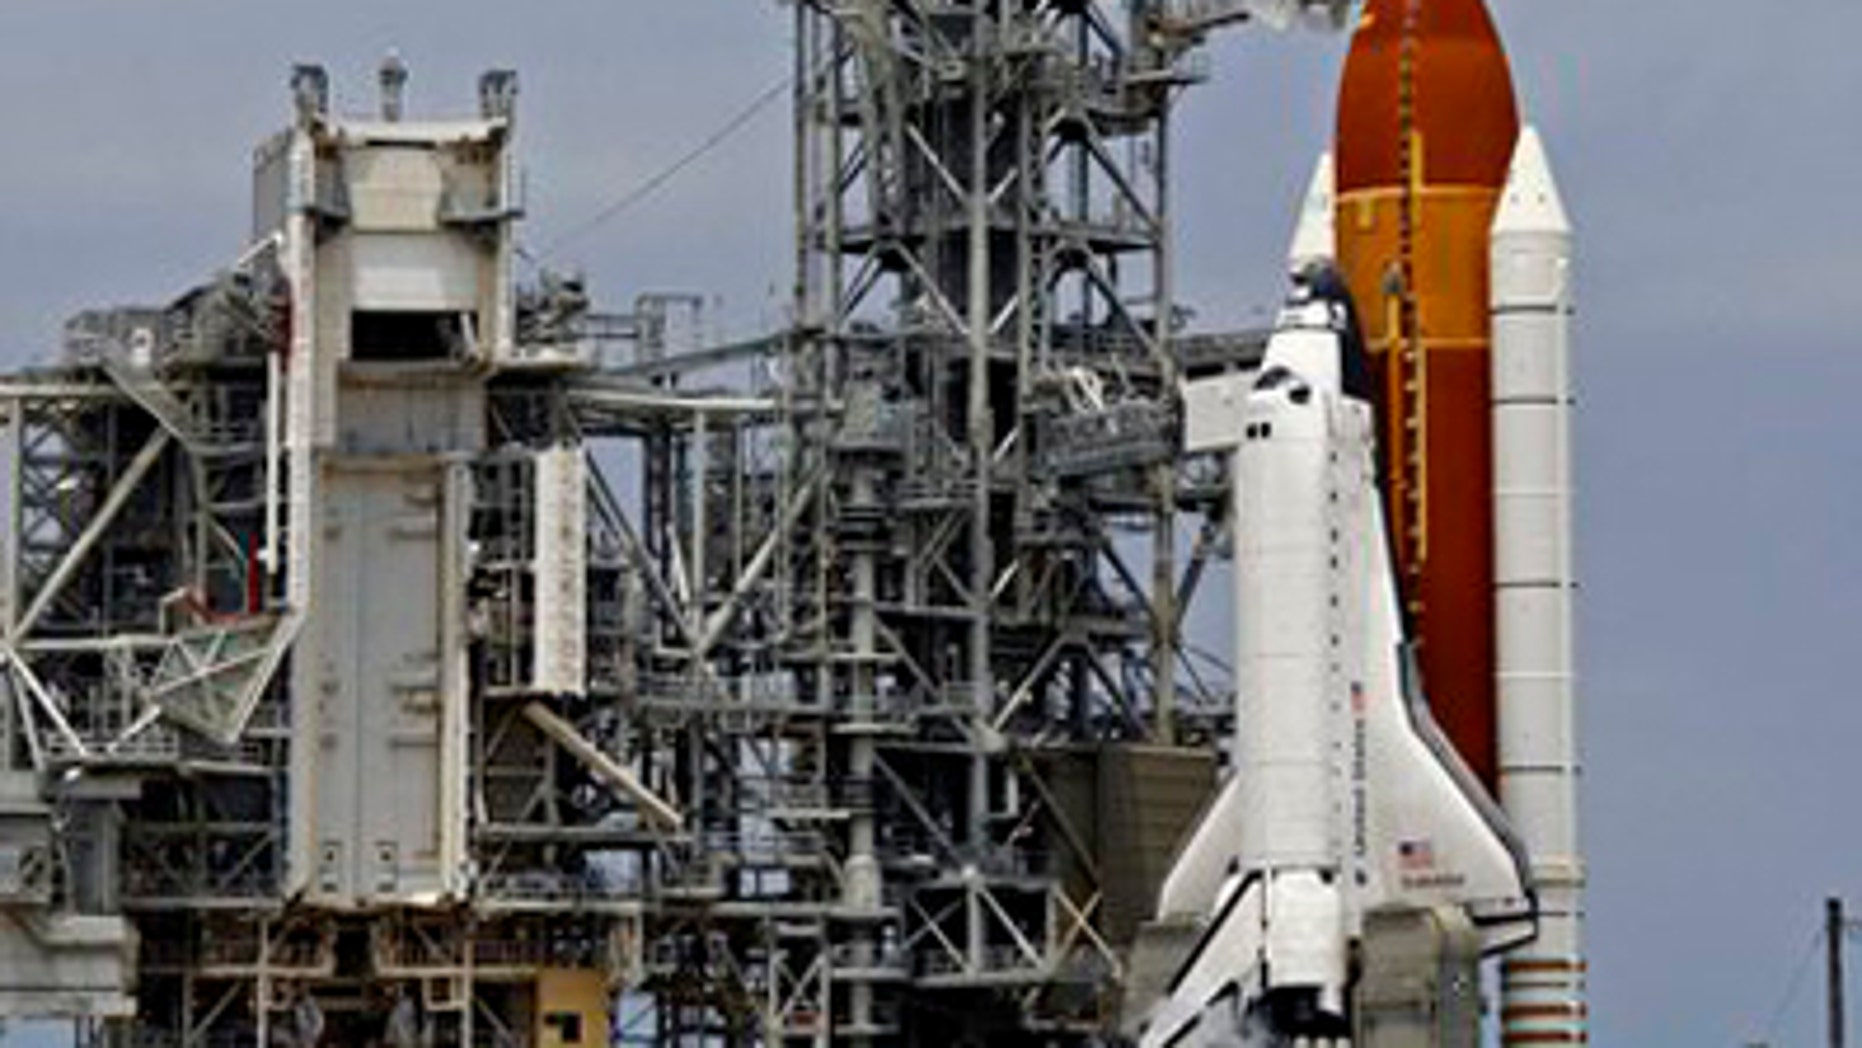 In this April 29, 2011 file photo, space shuttle Endeavour is seen on Pad 39A moments after launch was scrubbed because of technical problems at the Kennedy Space Center in Cape Canaveral, Fla. NASA will try again next Monday, May 16. 2011 to launch Endeavour on the next-to-last space shuttle flight, after replacing a switch box and plugging in new electrical wiring. (AP/File)